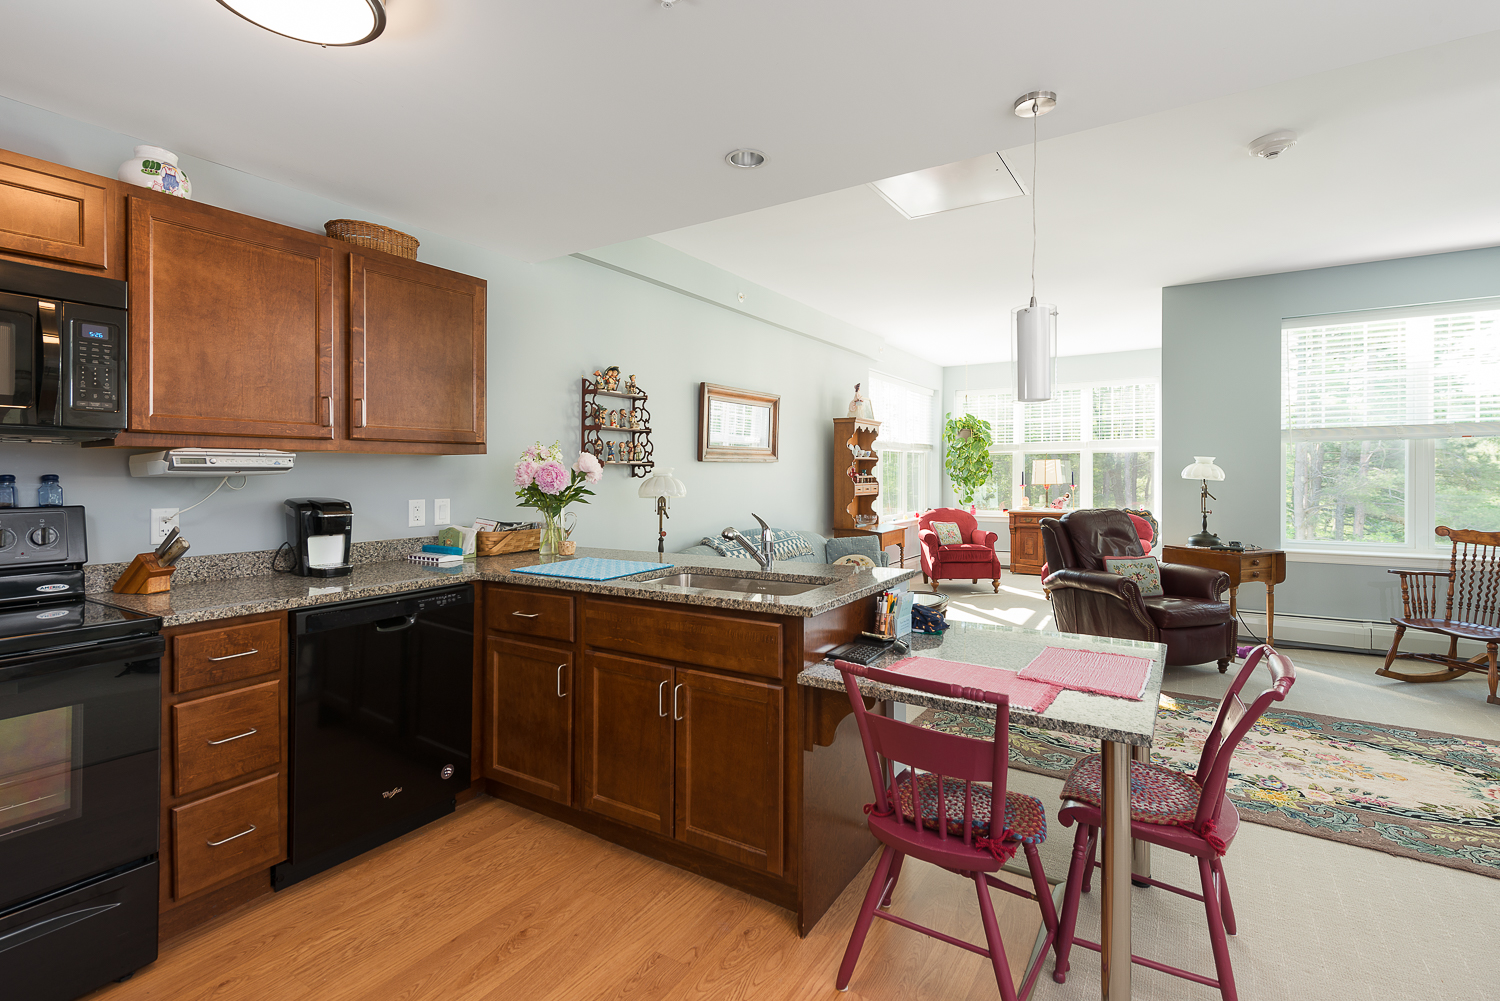 Independent living kitchen and living room.